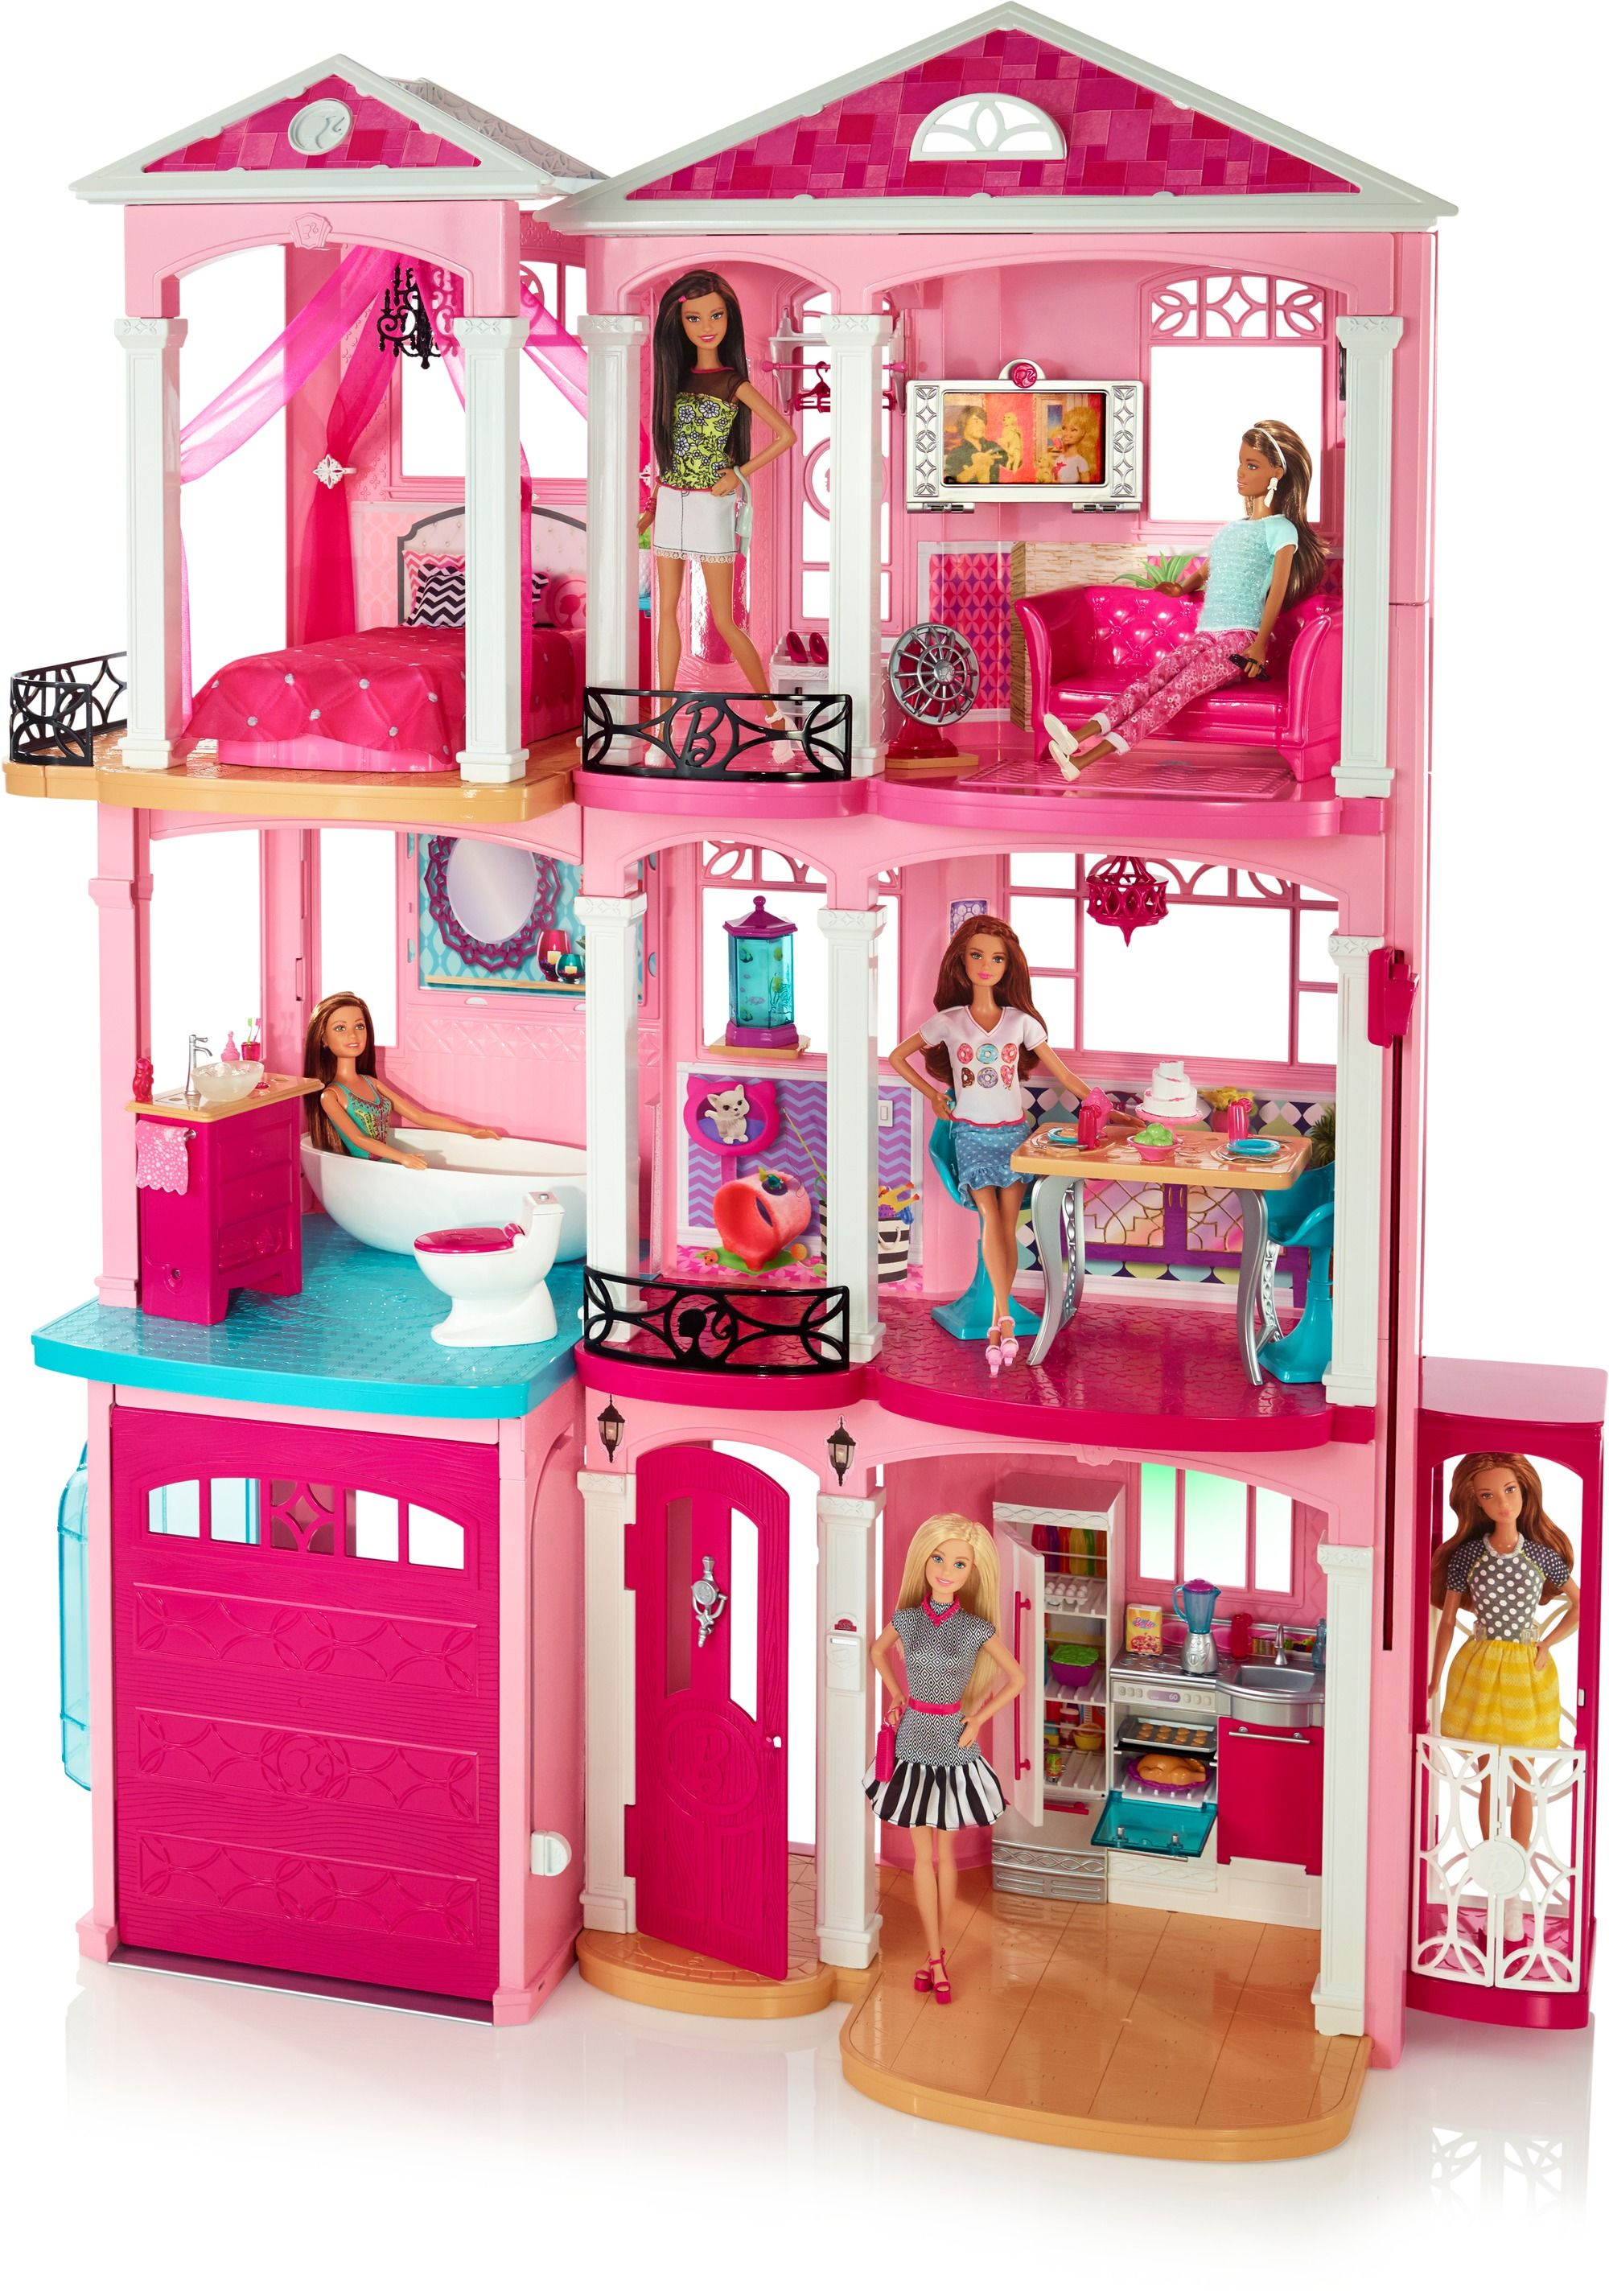 Barbie Dream House 2016 Replacement Parts In 2020 Barbie Doll House Barbie House Barbie Dream